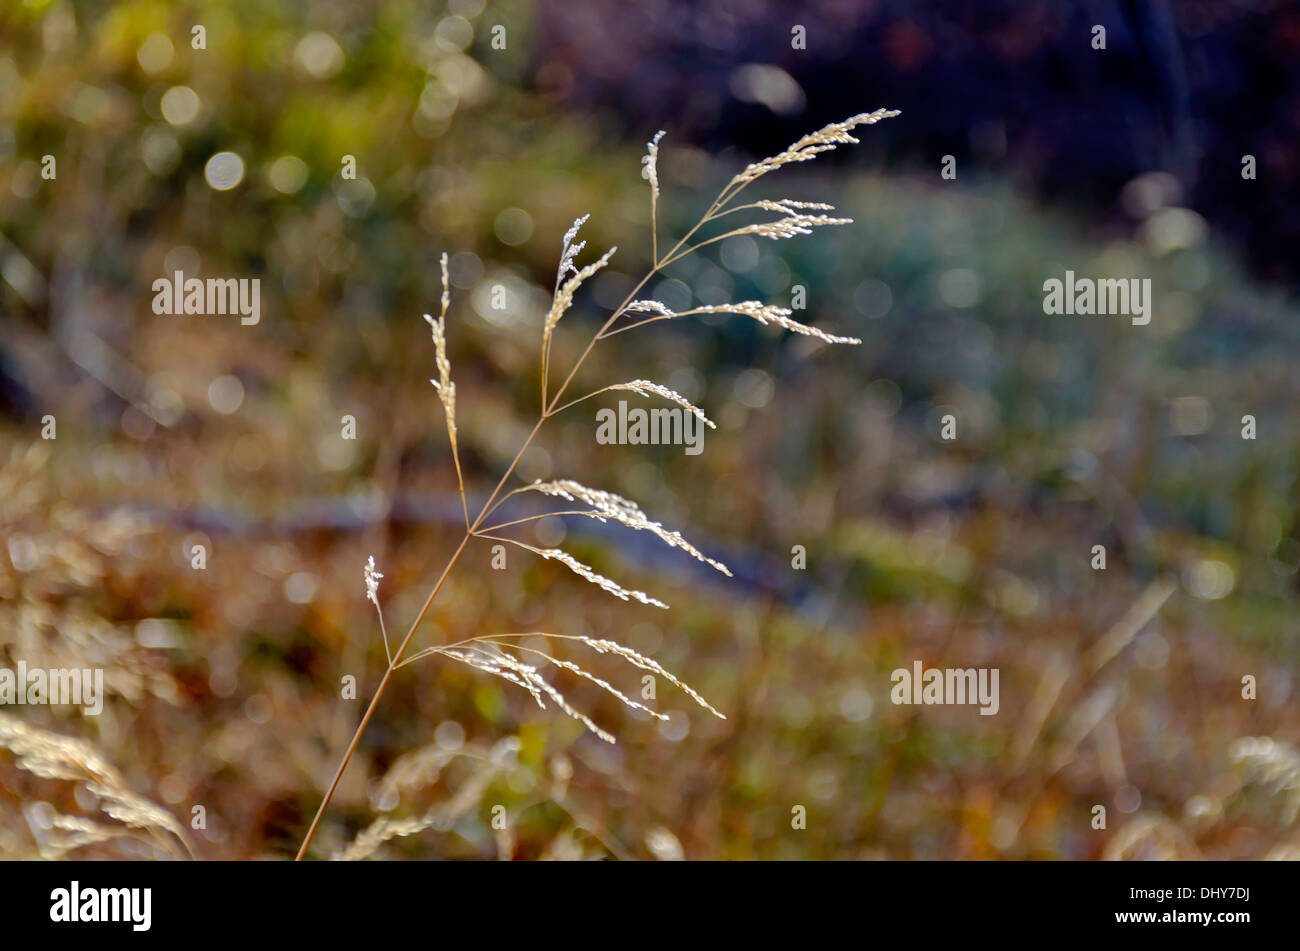 Lighted blade of grass in mountain - Stock Image